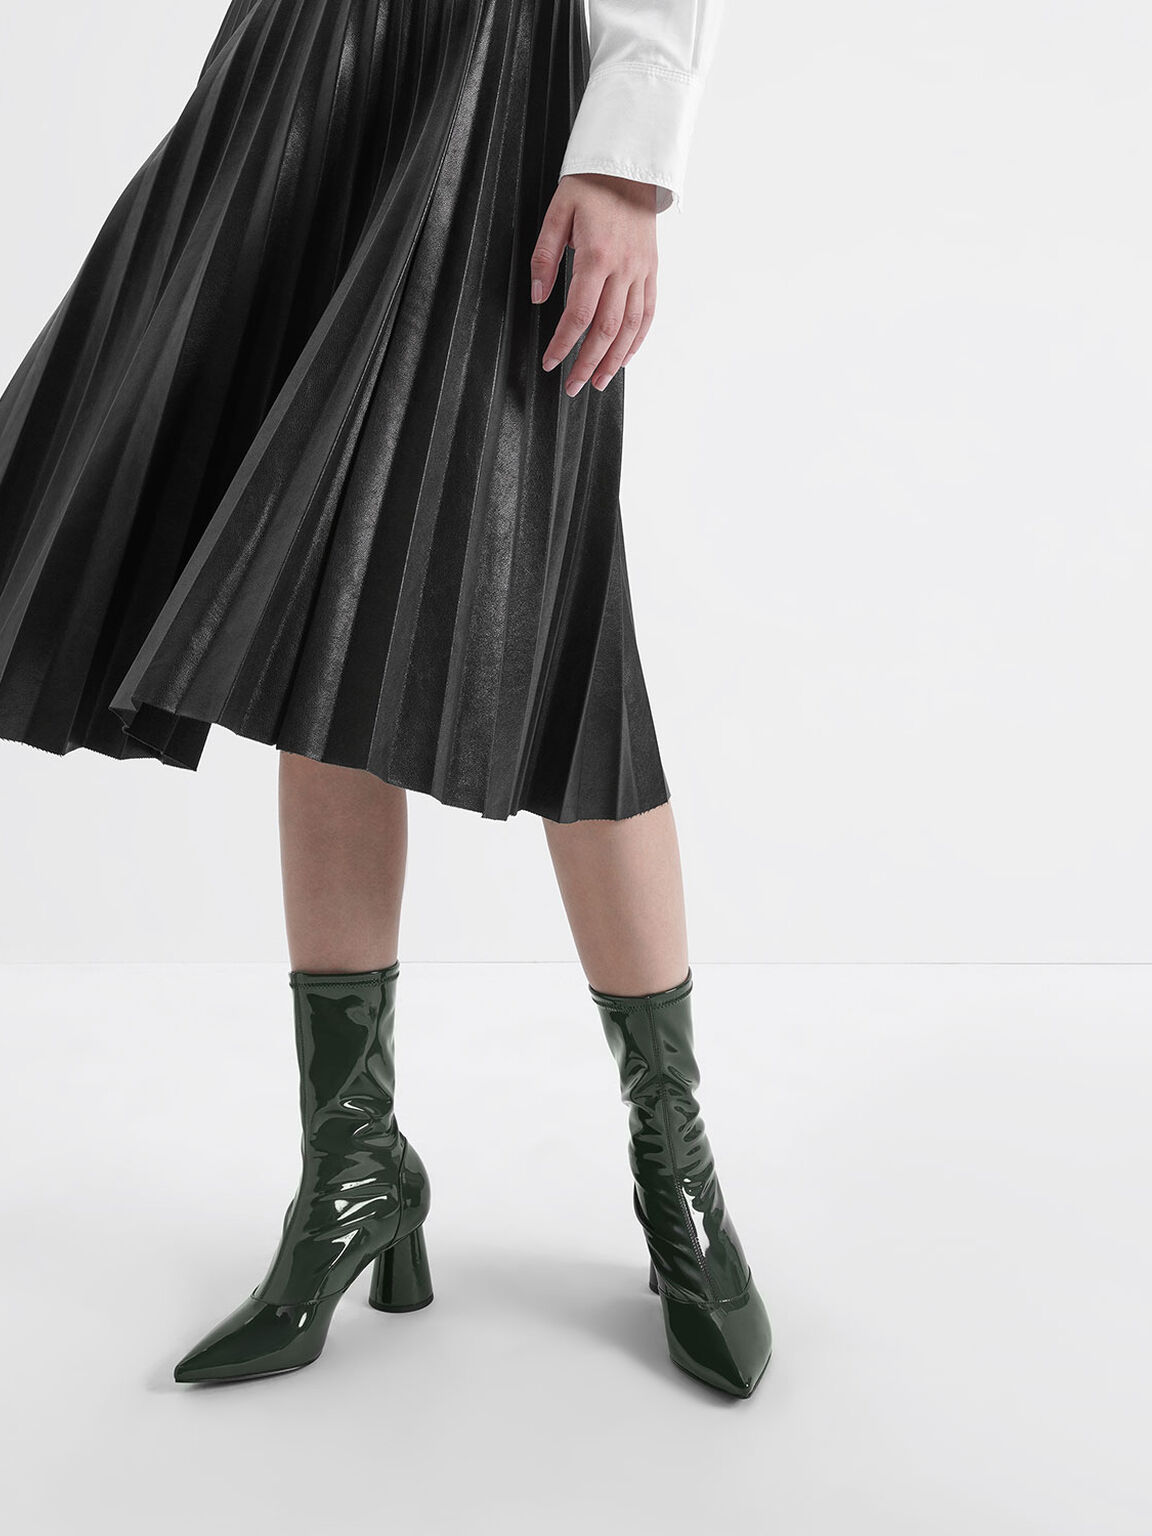 Patent Cylindrical Heel Calf Boots, Green, hi-res